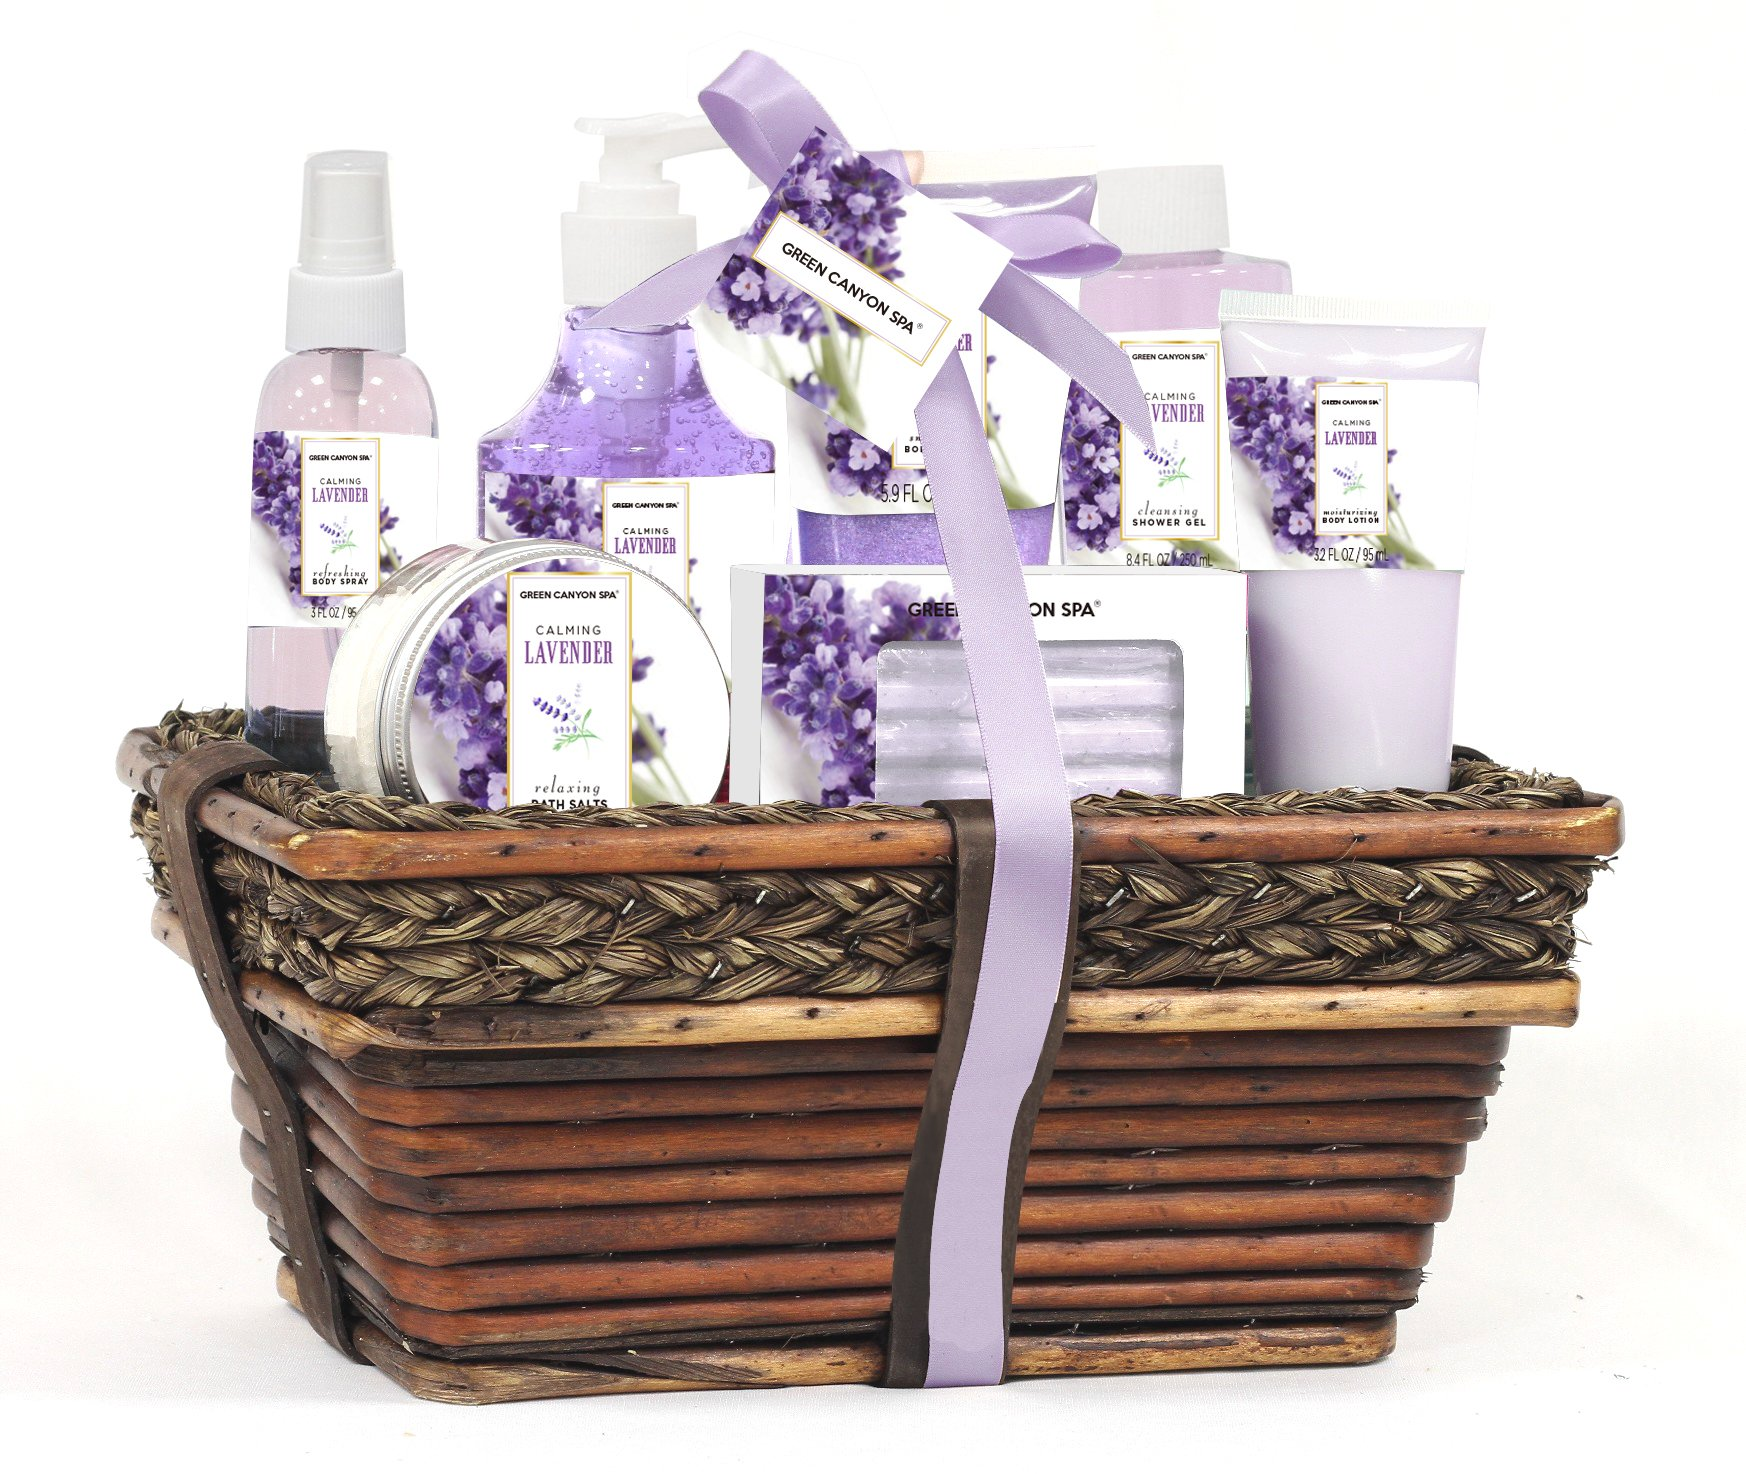 Lavender Ultimate Spa Gift Basket By Broadwaybasketeers Com: Amazon.com : Gift Baskets For Women, Green Canyon Spa Gift